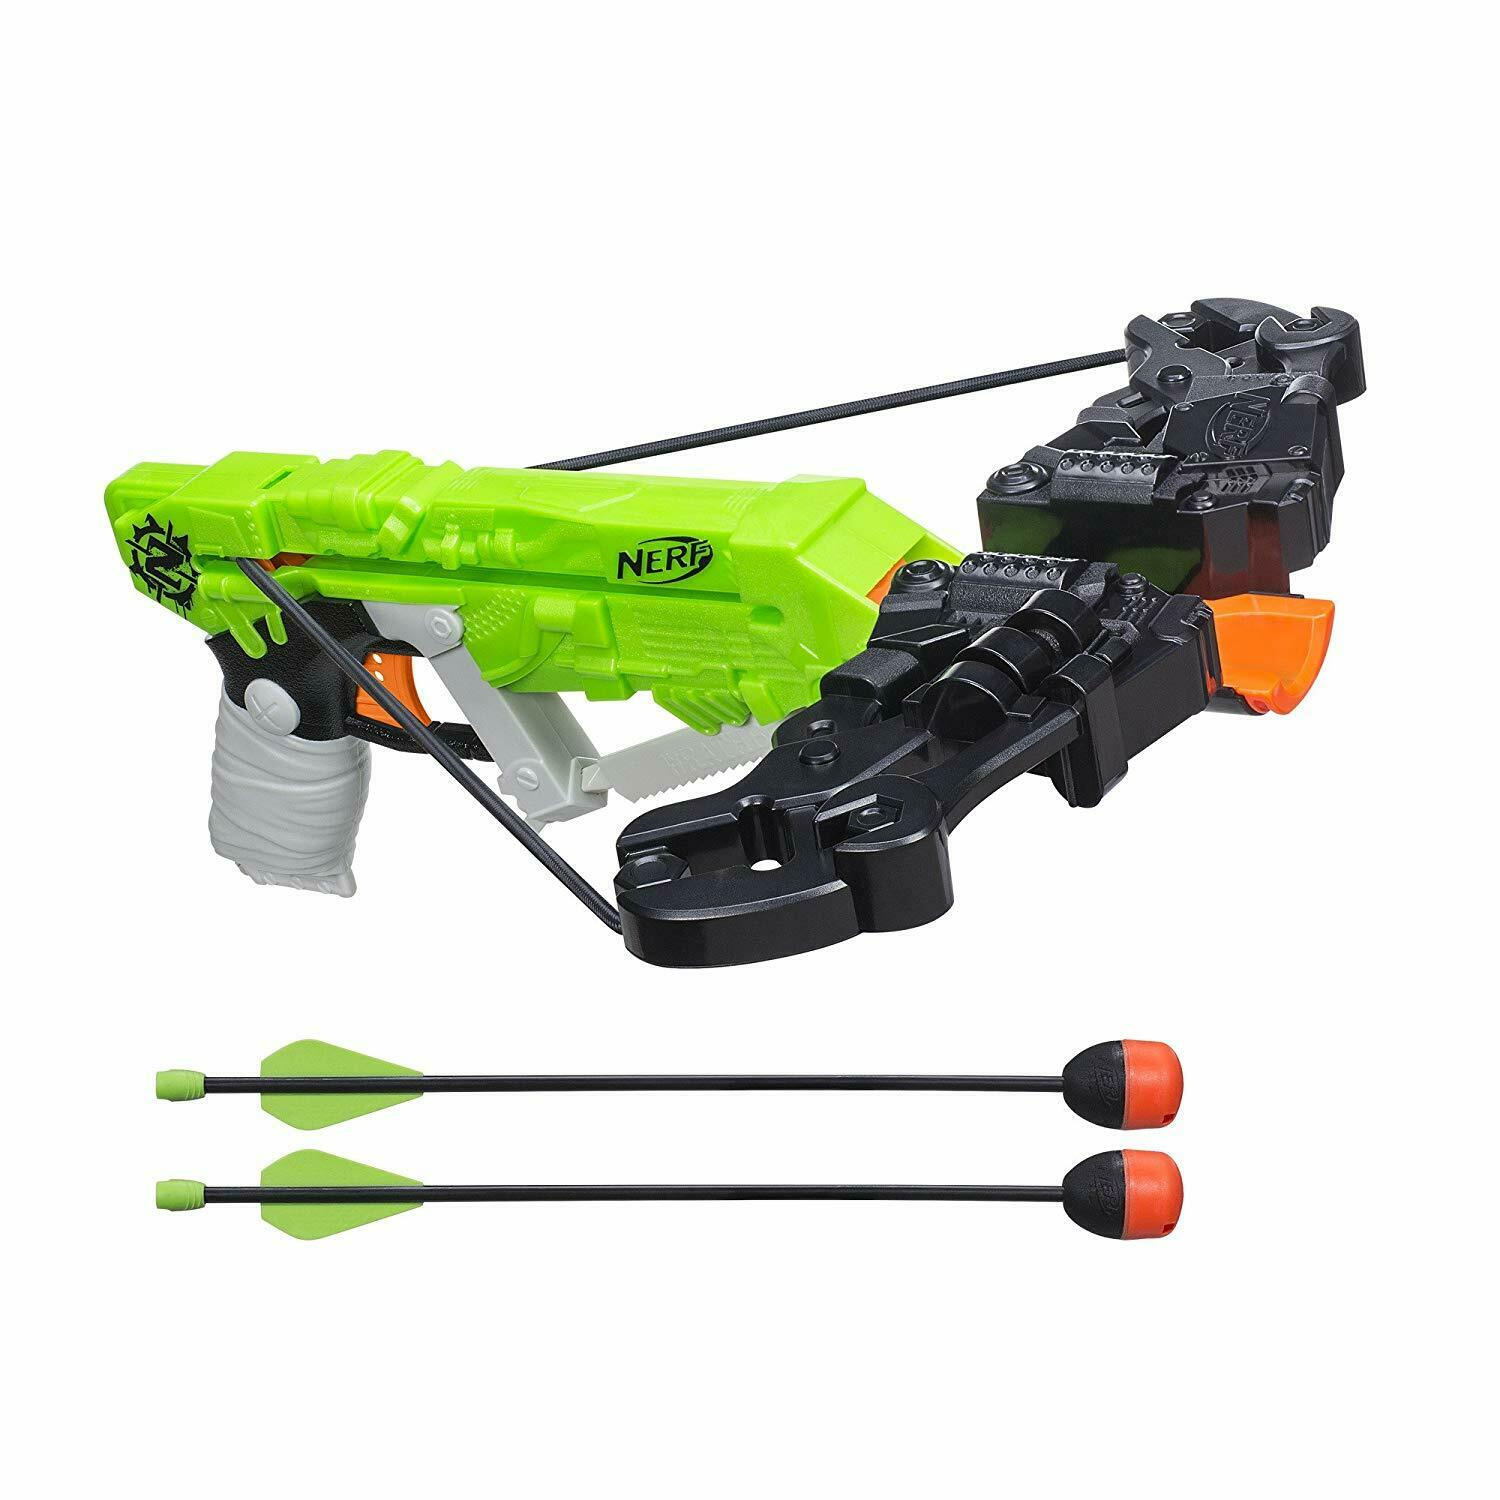 Real Crossbow Action Nerf Gun N-Strike Blaster Bow Gun Fires